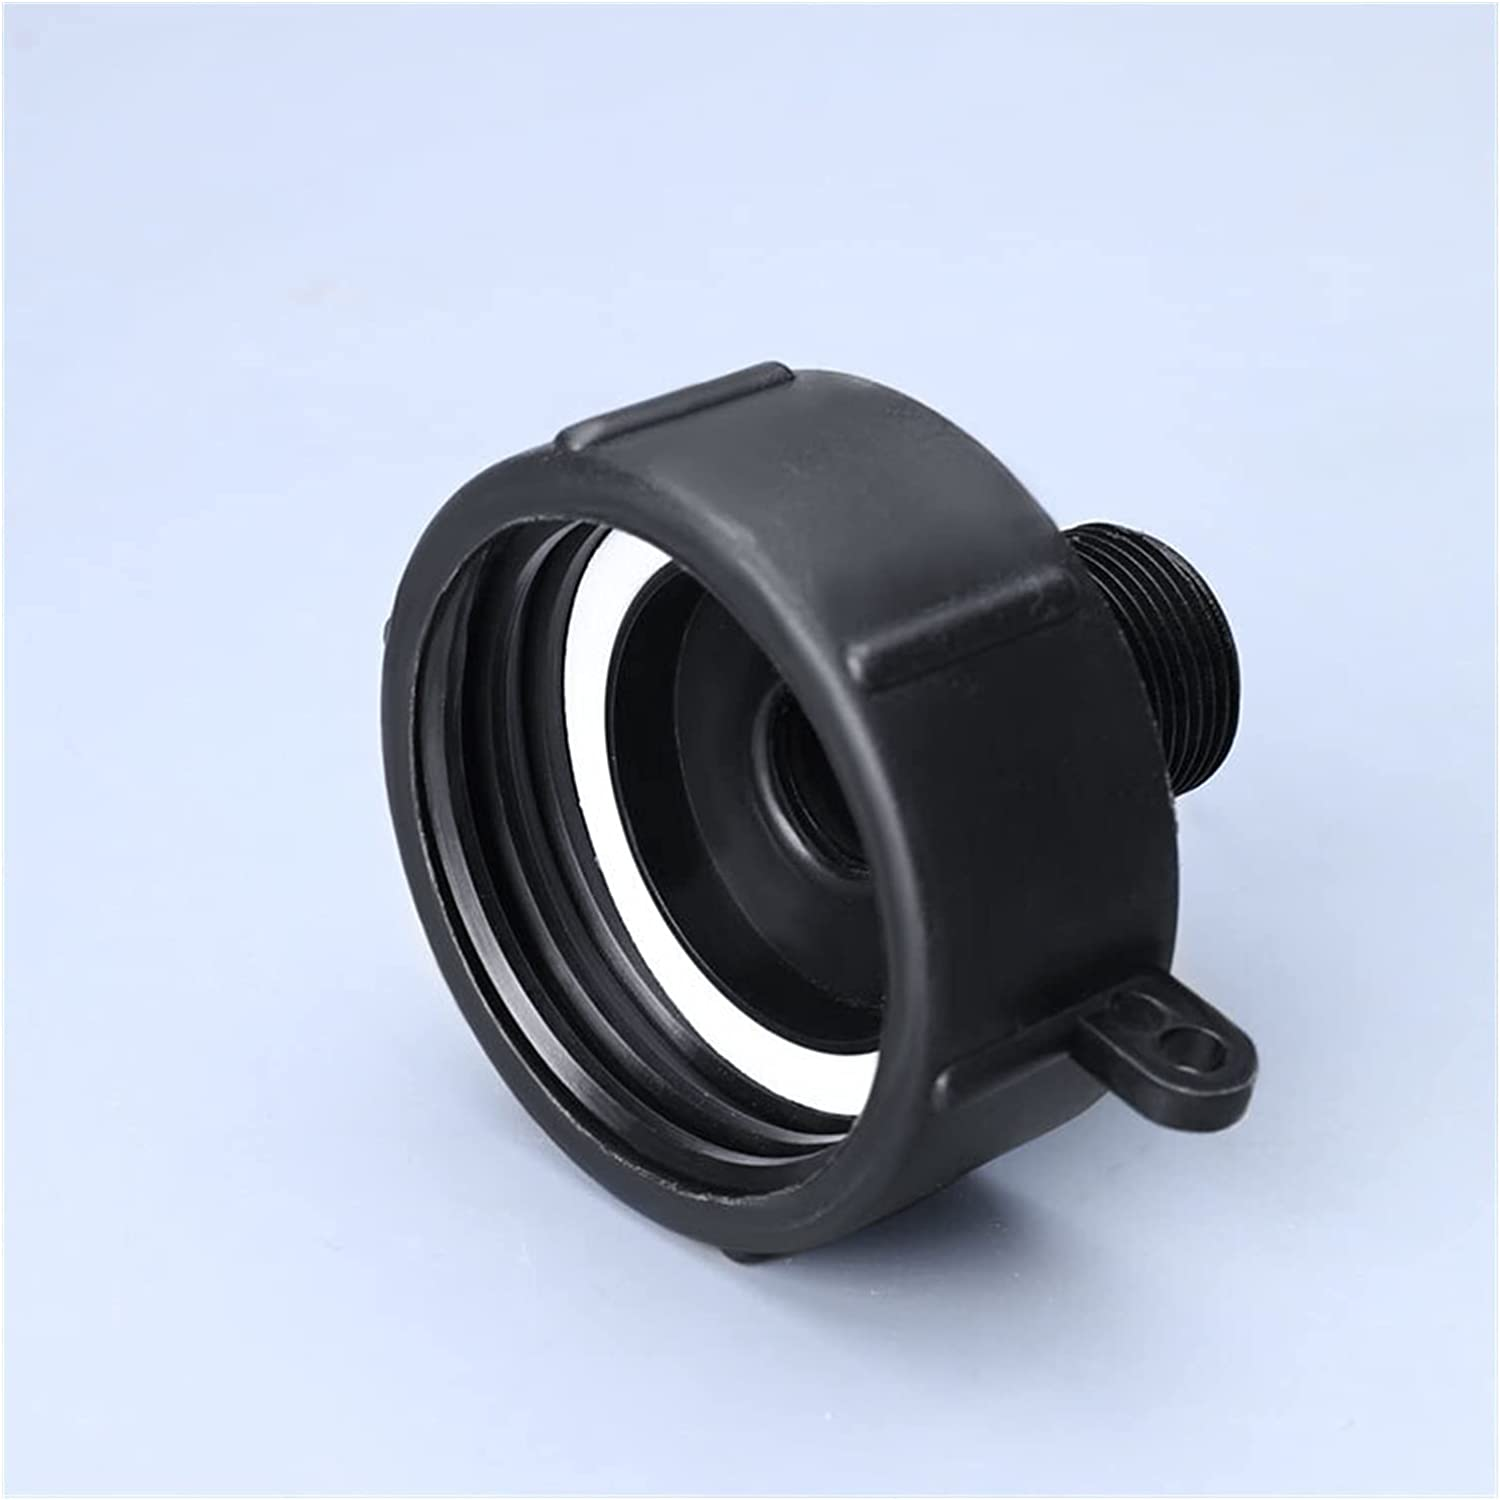 juqingshanghang1 Hose Fitting- S60 Thread 25mm Pi lowest price to Excellent Garden